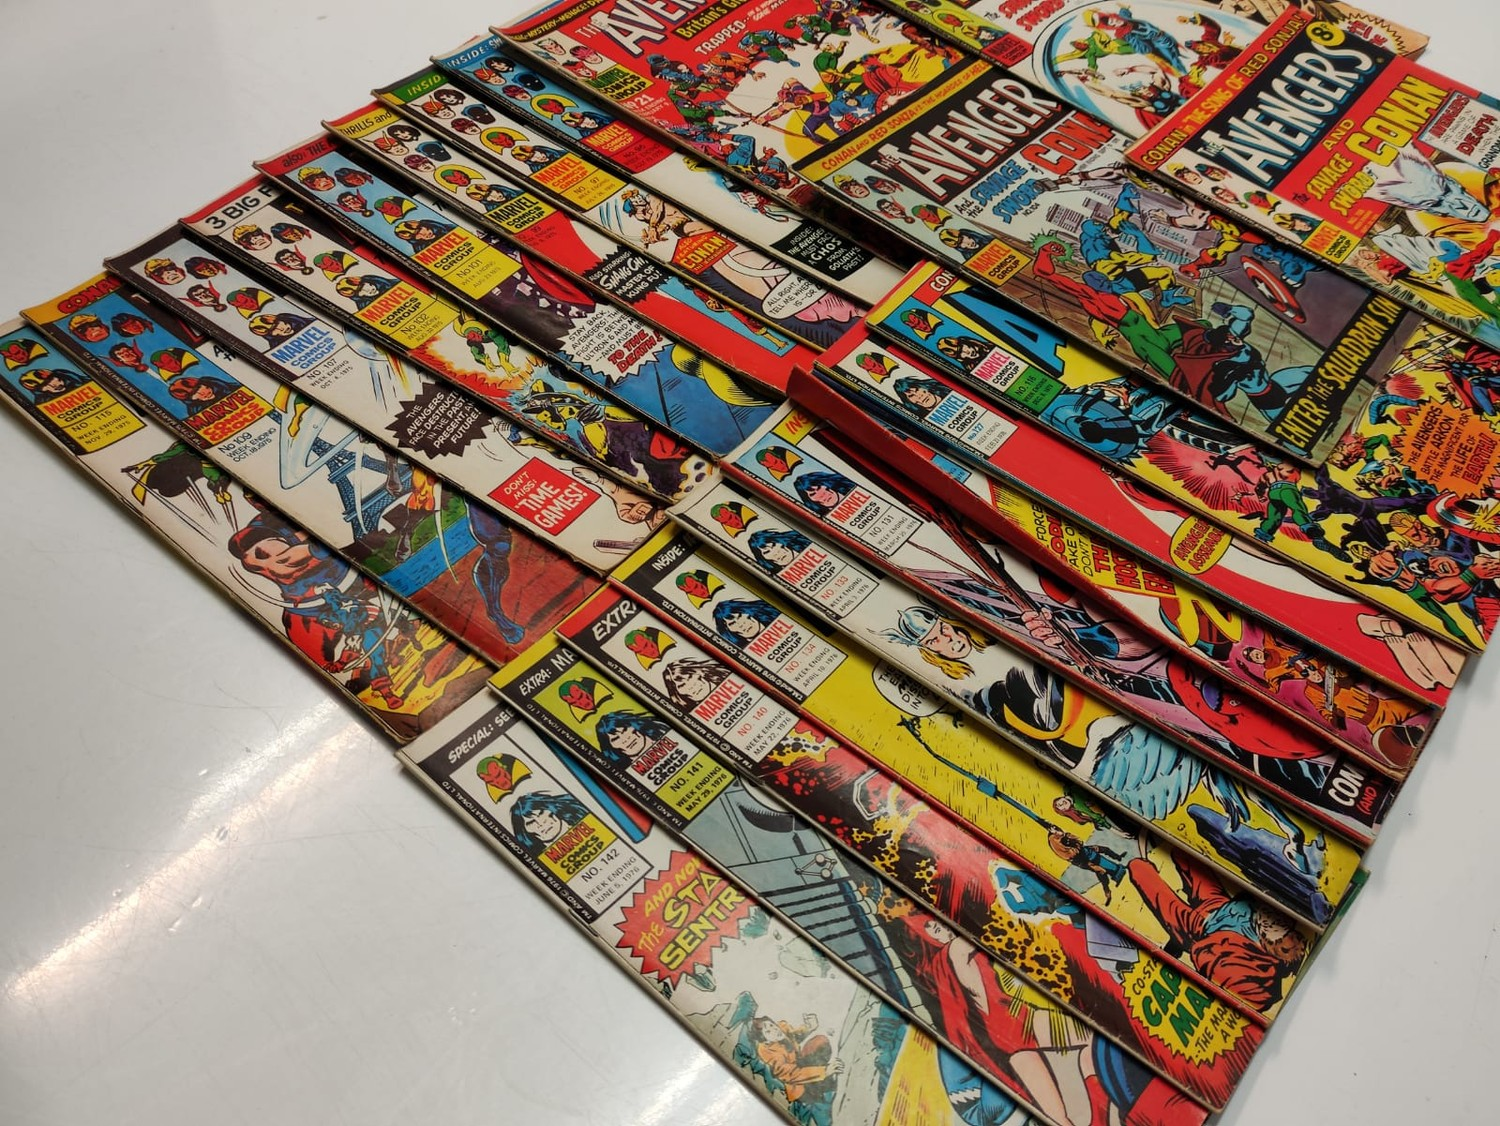 25 x Marvel comics. The Avengers. Dating from 1974-1976 - Image 4 of 18